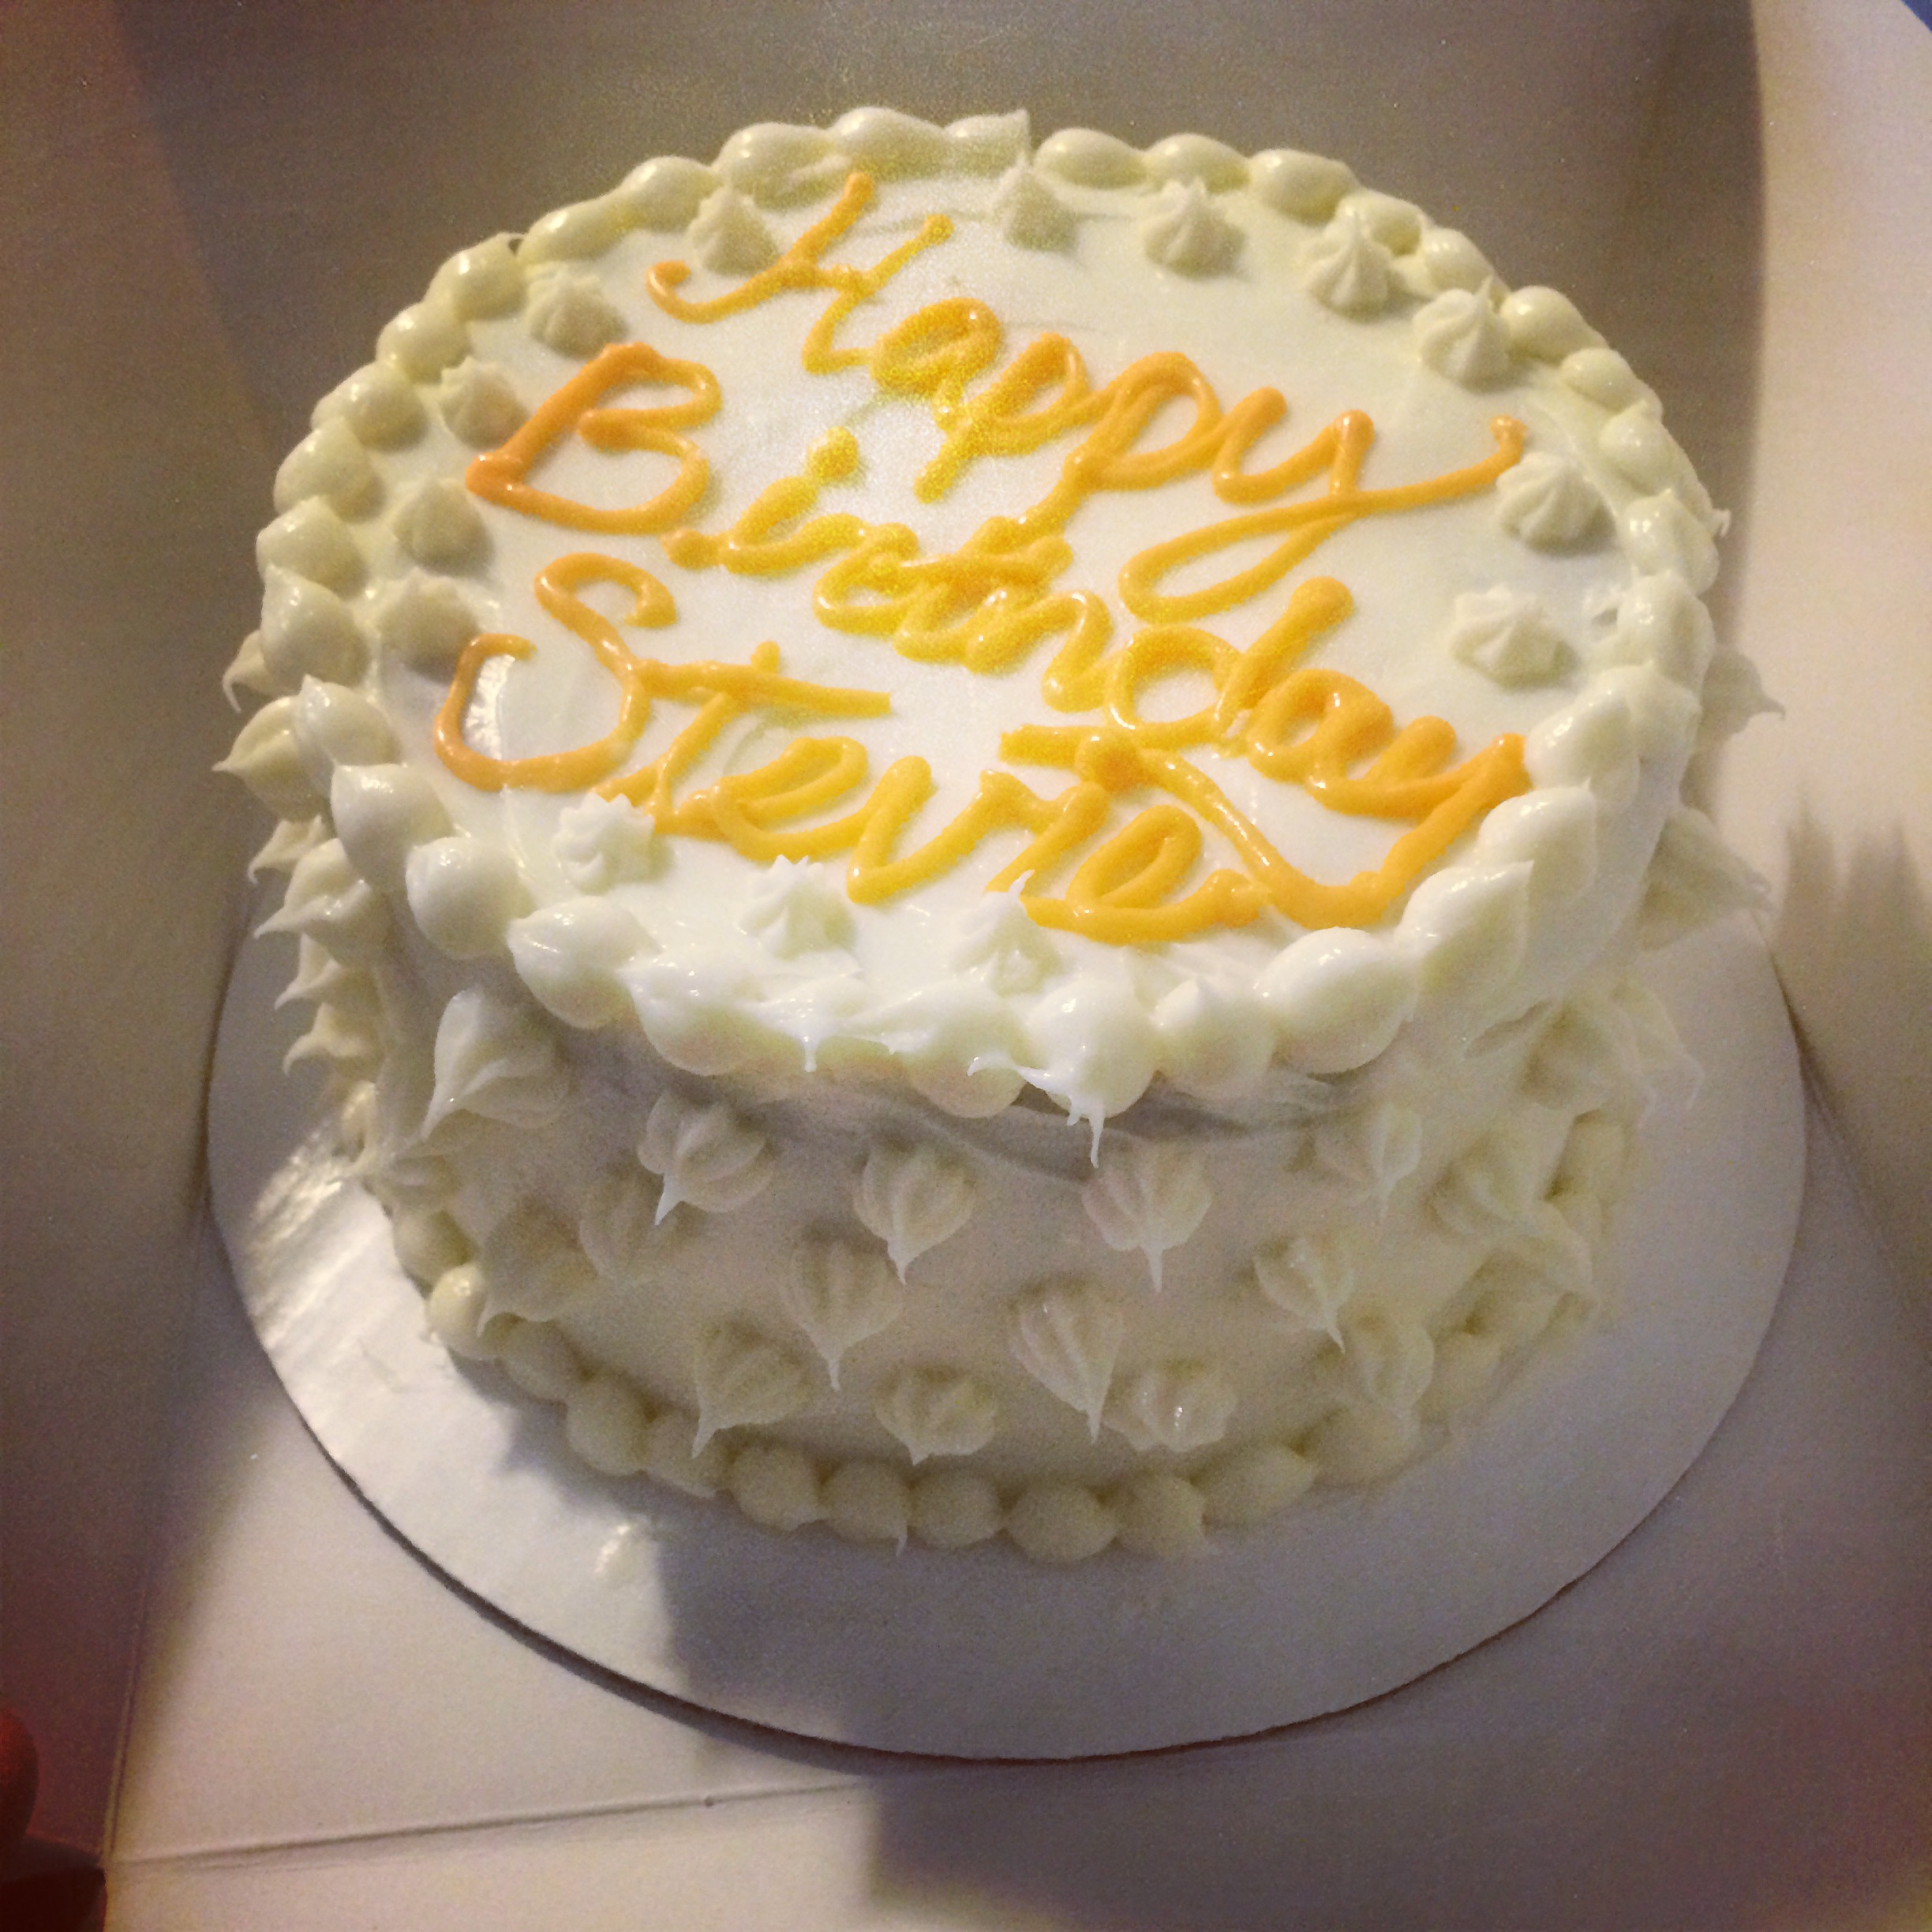 Gluten Free Cake Decorating Icing : Gluten Free Carrot Cake with Maple Cream Cheese Frosting ...